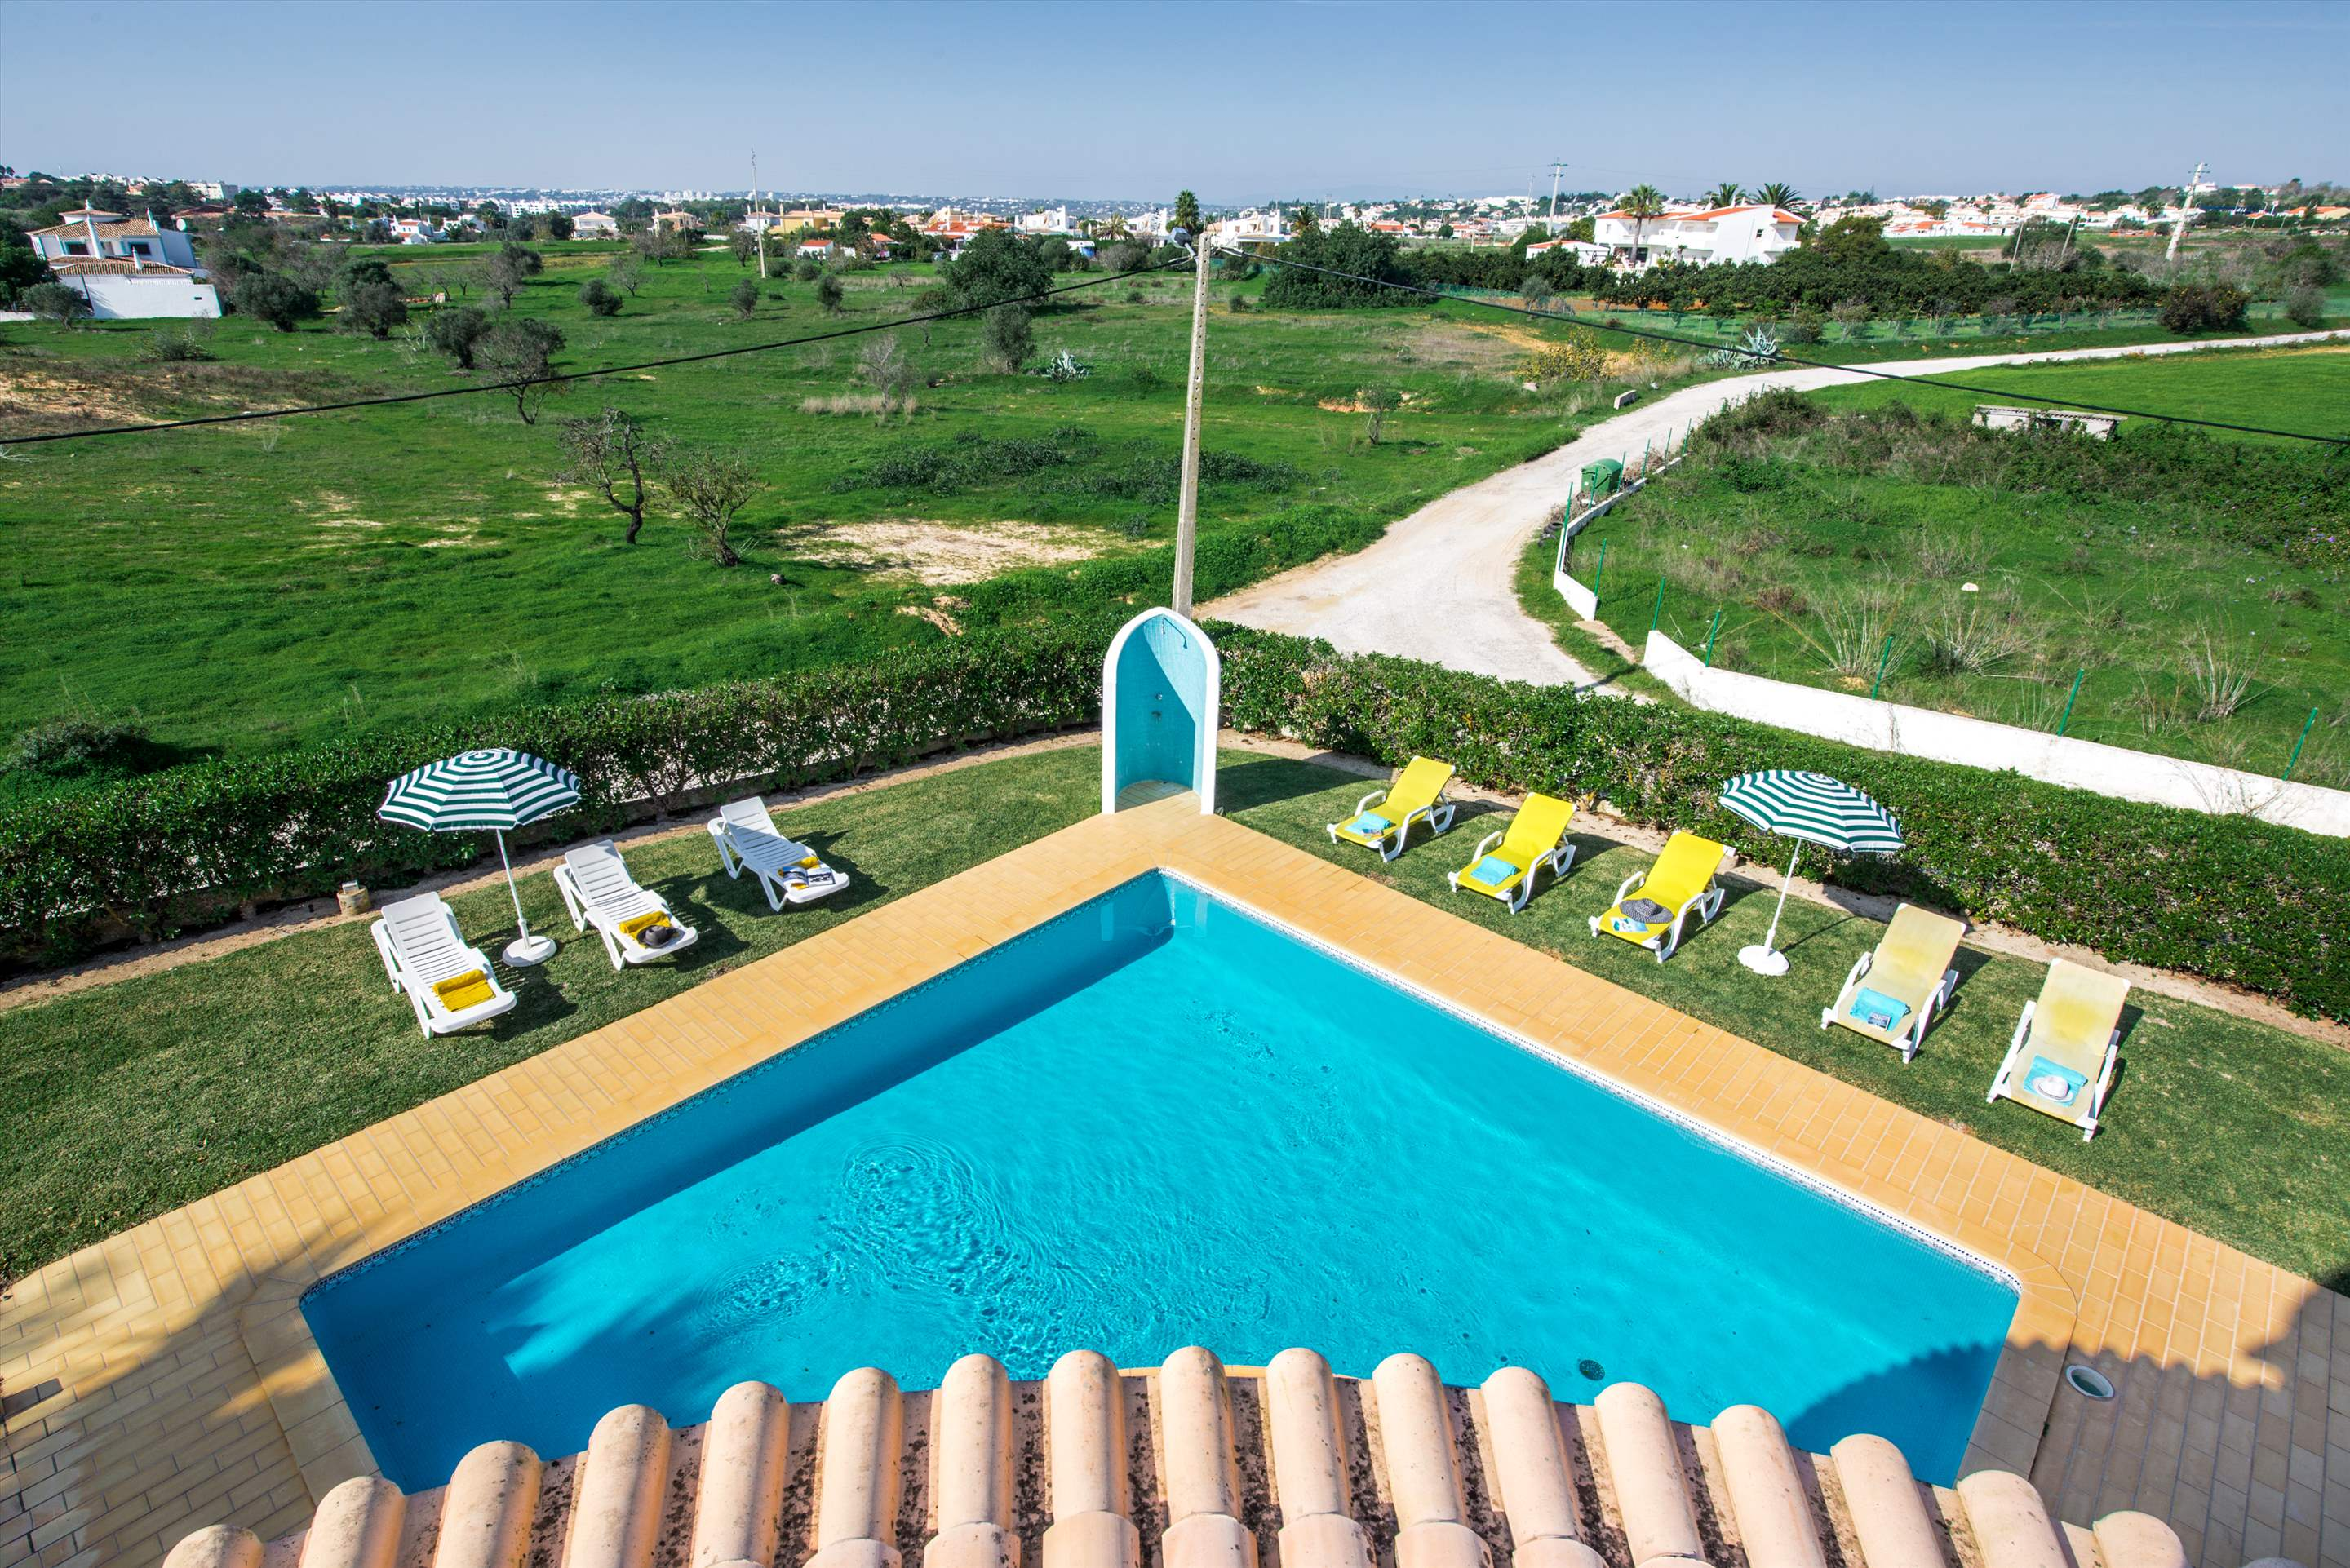 Villa Marco Real, 7-8 persons rate, 4 bedroom villa in Gale, Vale da Parra and Guia, Algarve Photo #22